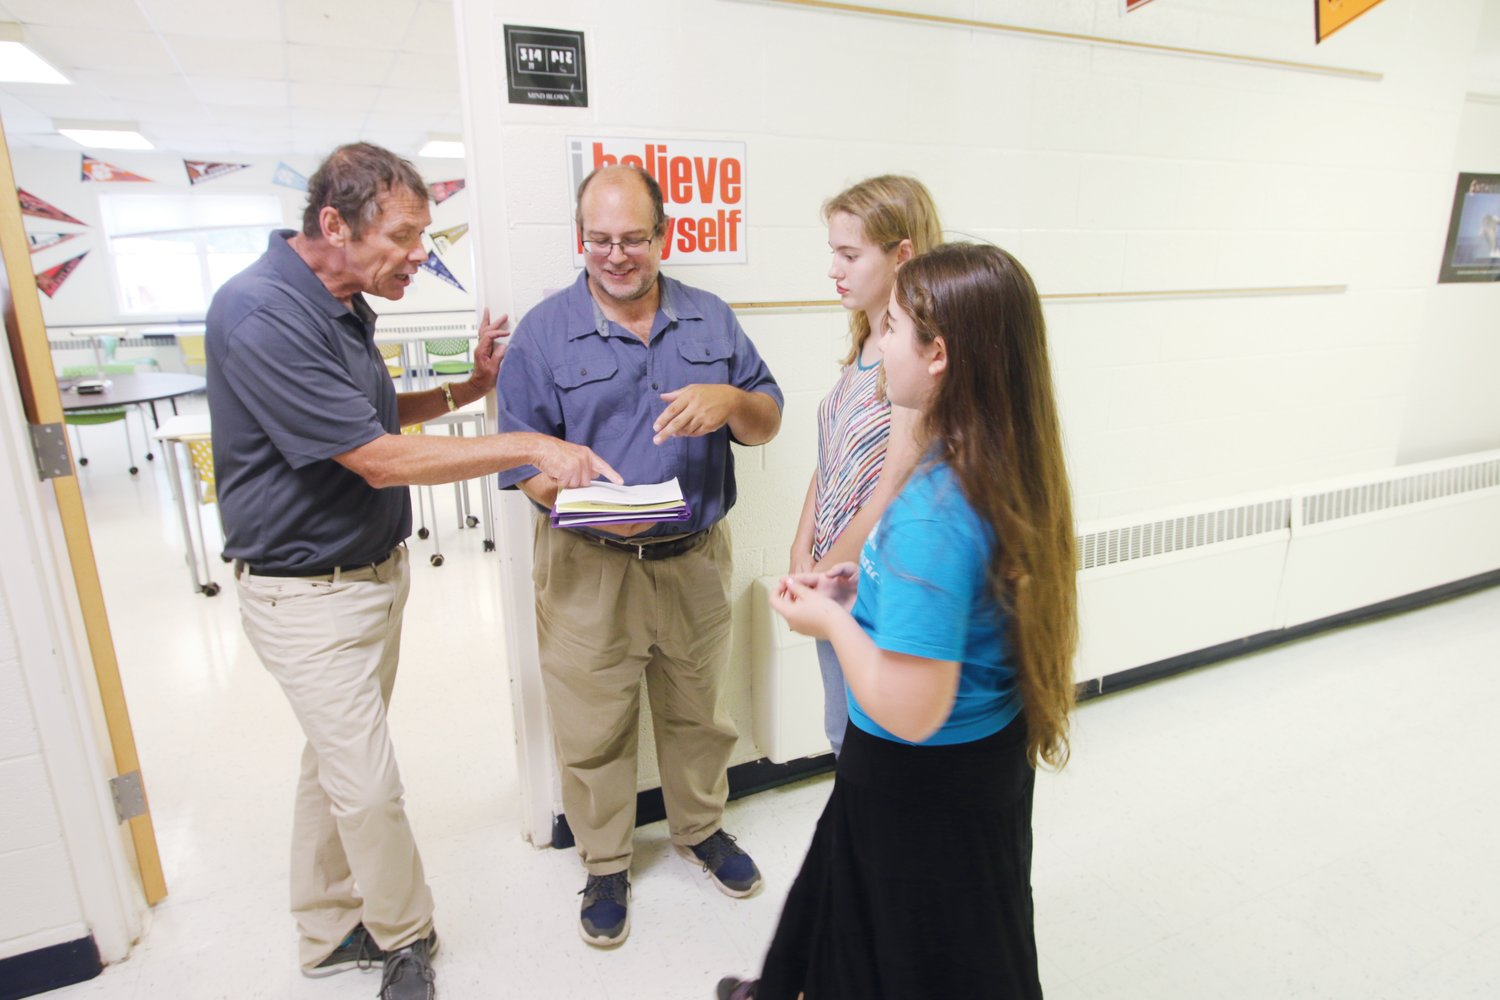 Chatham School of Science & Engineering student Lily Taylor (second from right) and her sister, Miana, look on while Science & Engineering educator Patrick Tillett speaks with their father, Mark, during open house on campus Aug. 6.